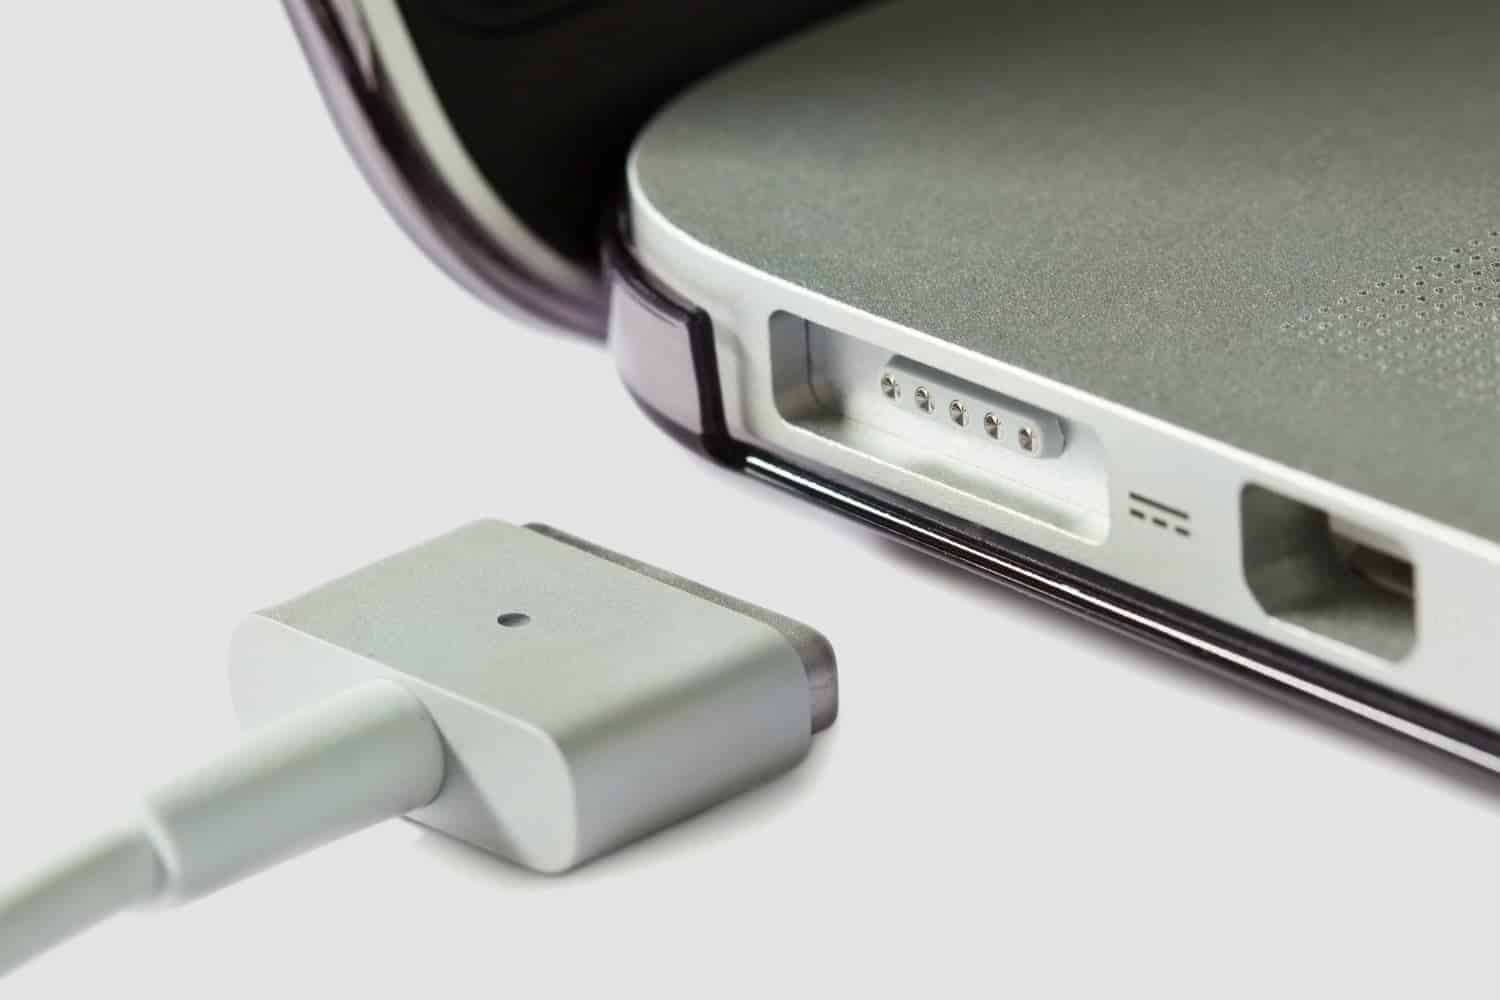 The curious case of MagSafe for iPhone: The Future